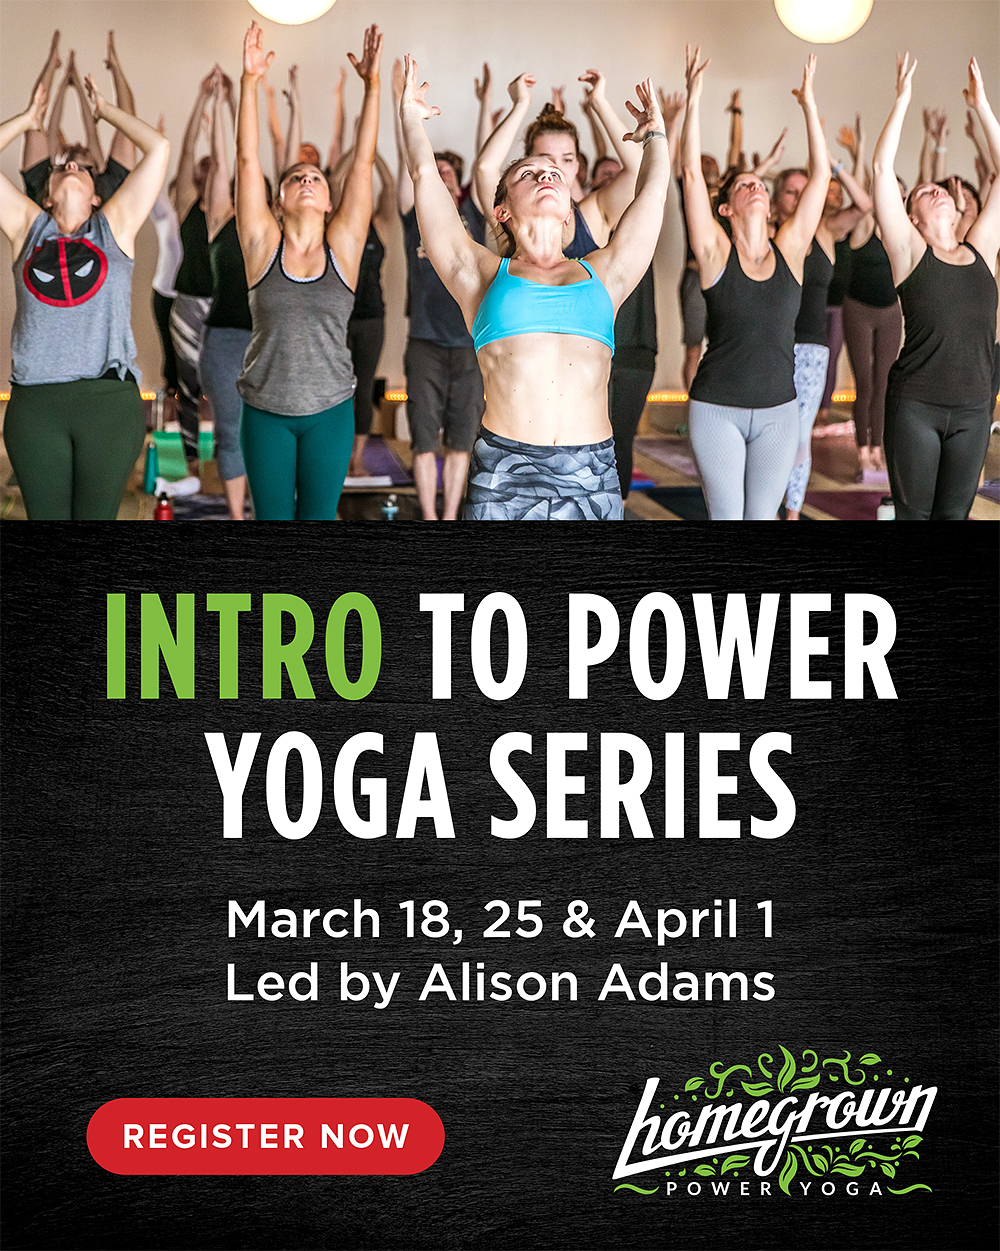 INTRO TO POWER YOGA SERIES FB POSTER.jpg